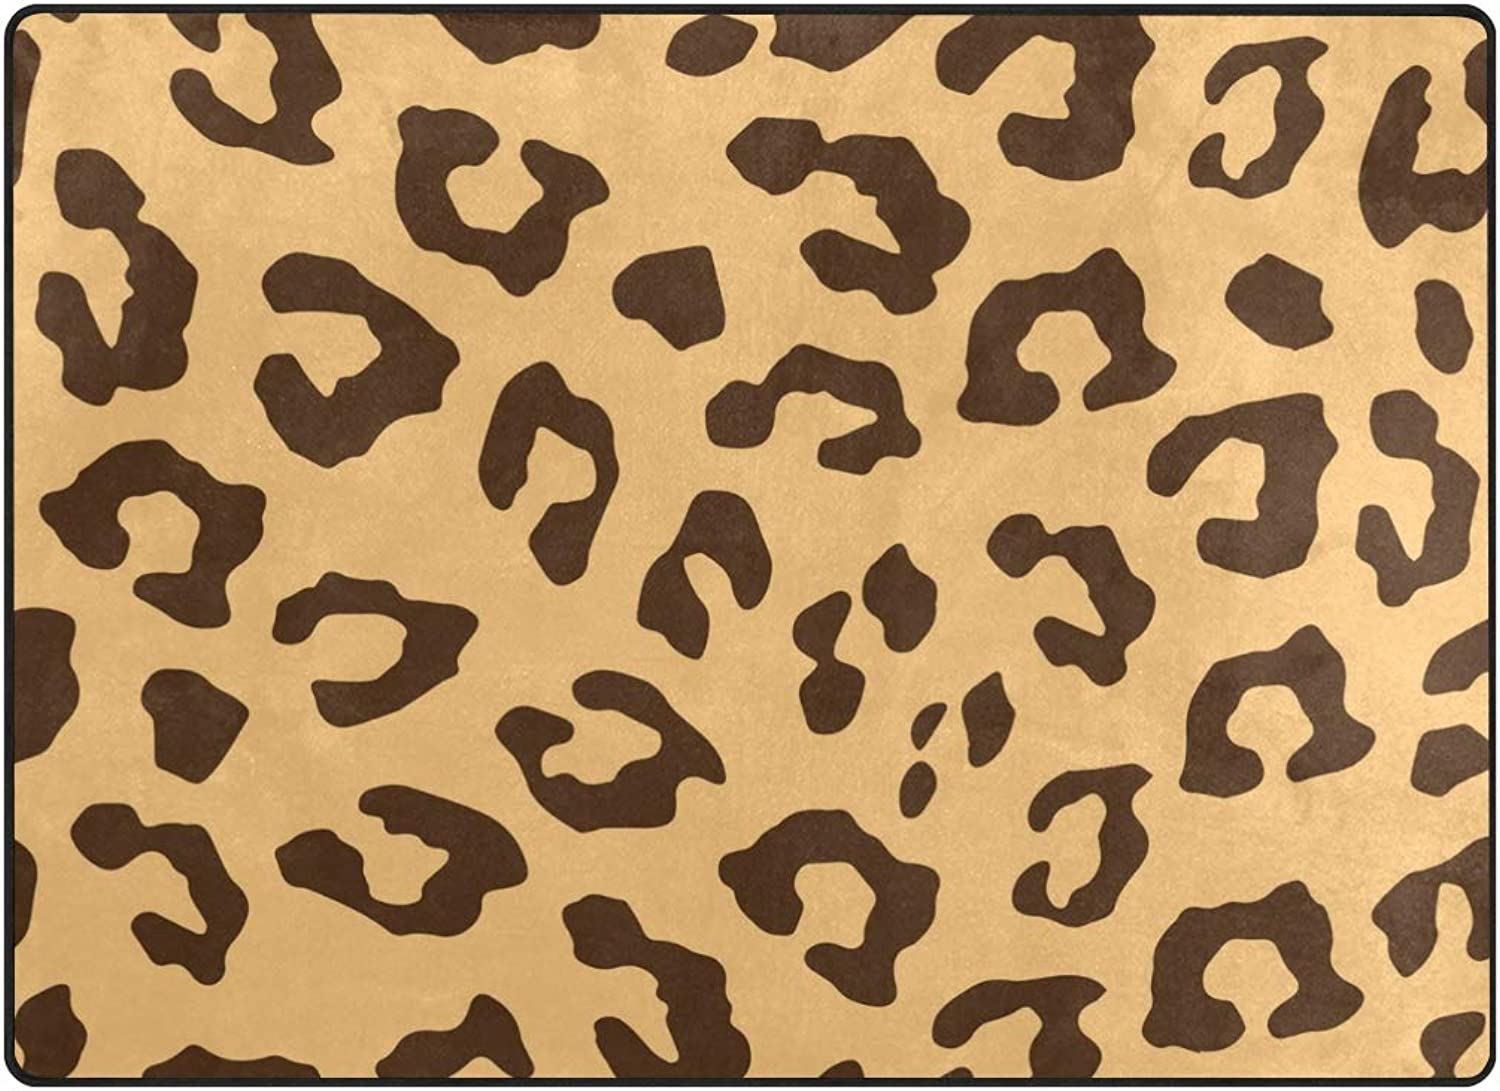 FAJRO Stylish Leopard Print Rugs for entryway Doormat Area Rug Multipattern Door Mat shoes Scraper Home Dec Anti-Slip Indoor Outdoor